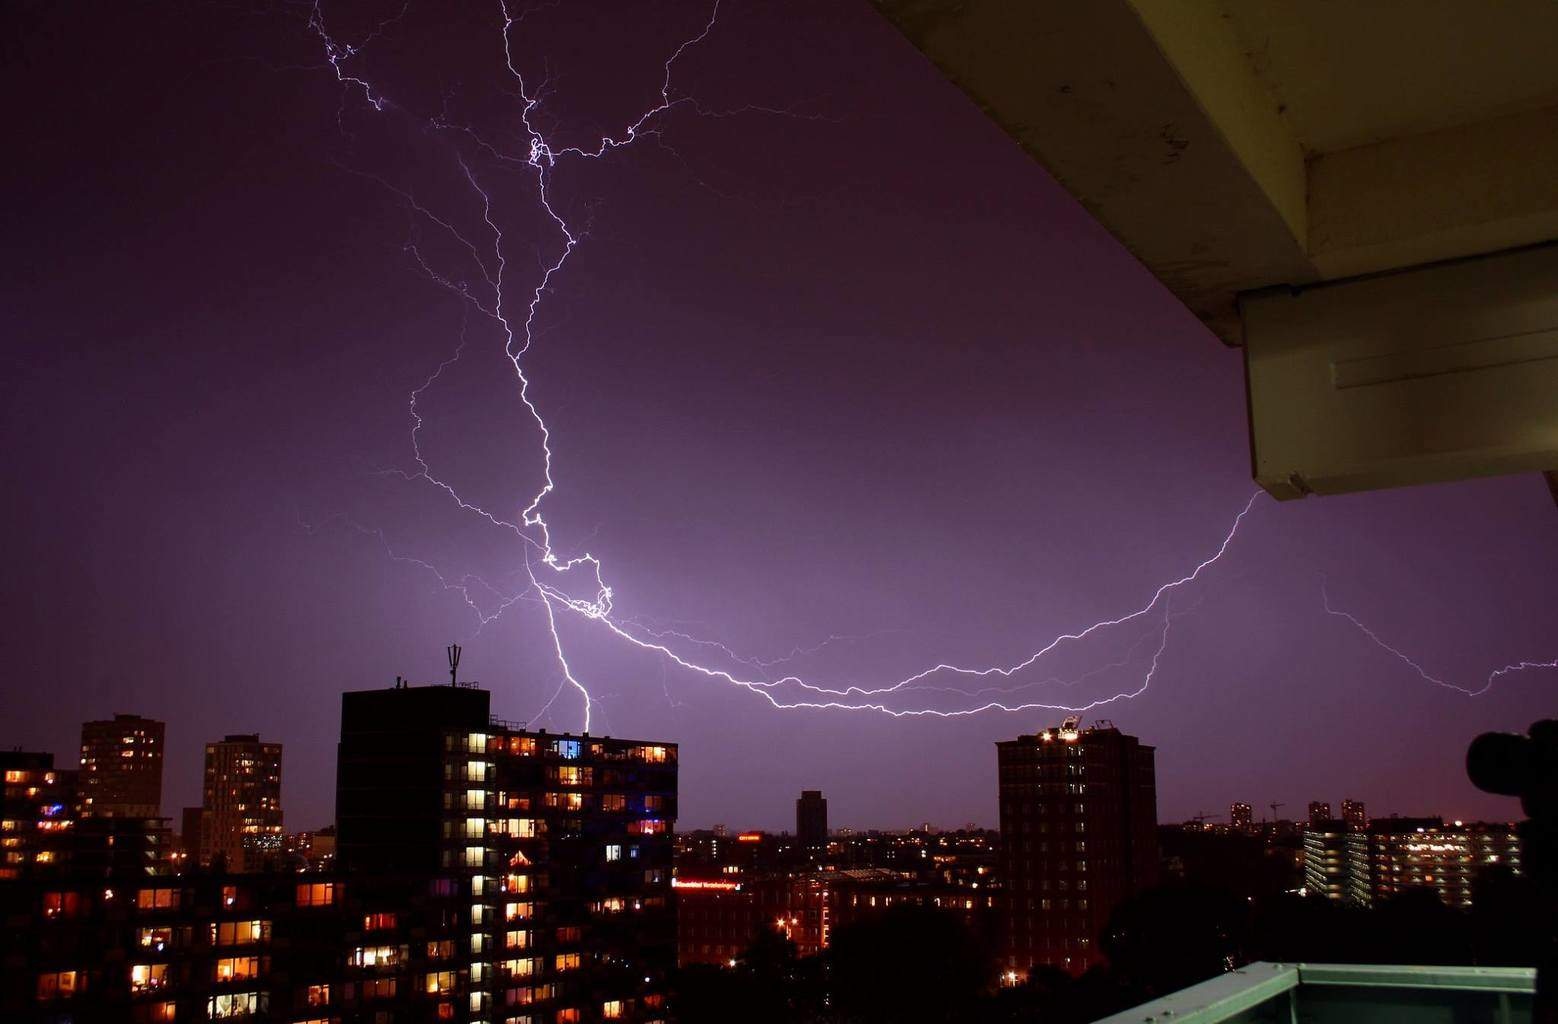 Our lightning spot in Zoetermeer the Netherlands. Shot this photo back in 2009. Greets Jeroen Kuiten. Sweetlakecity-Stormchasers